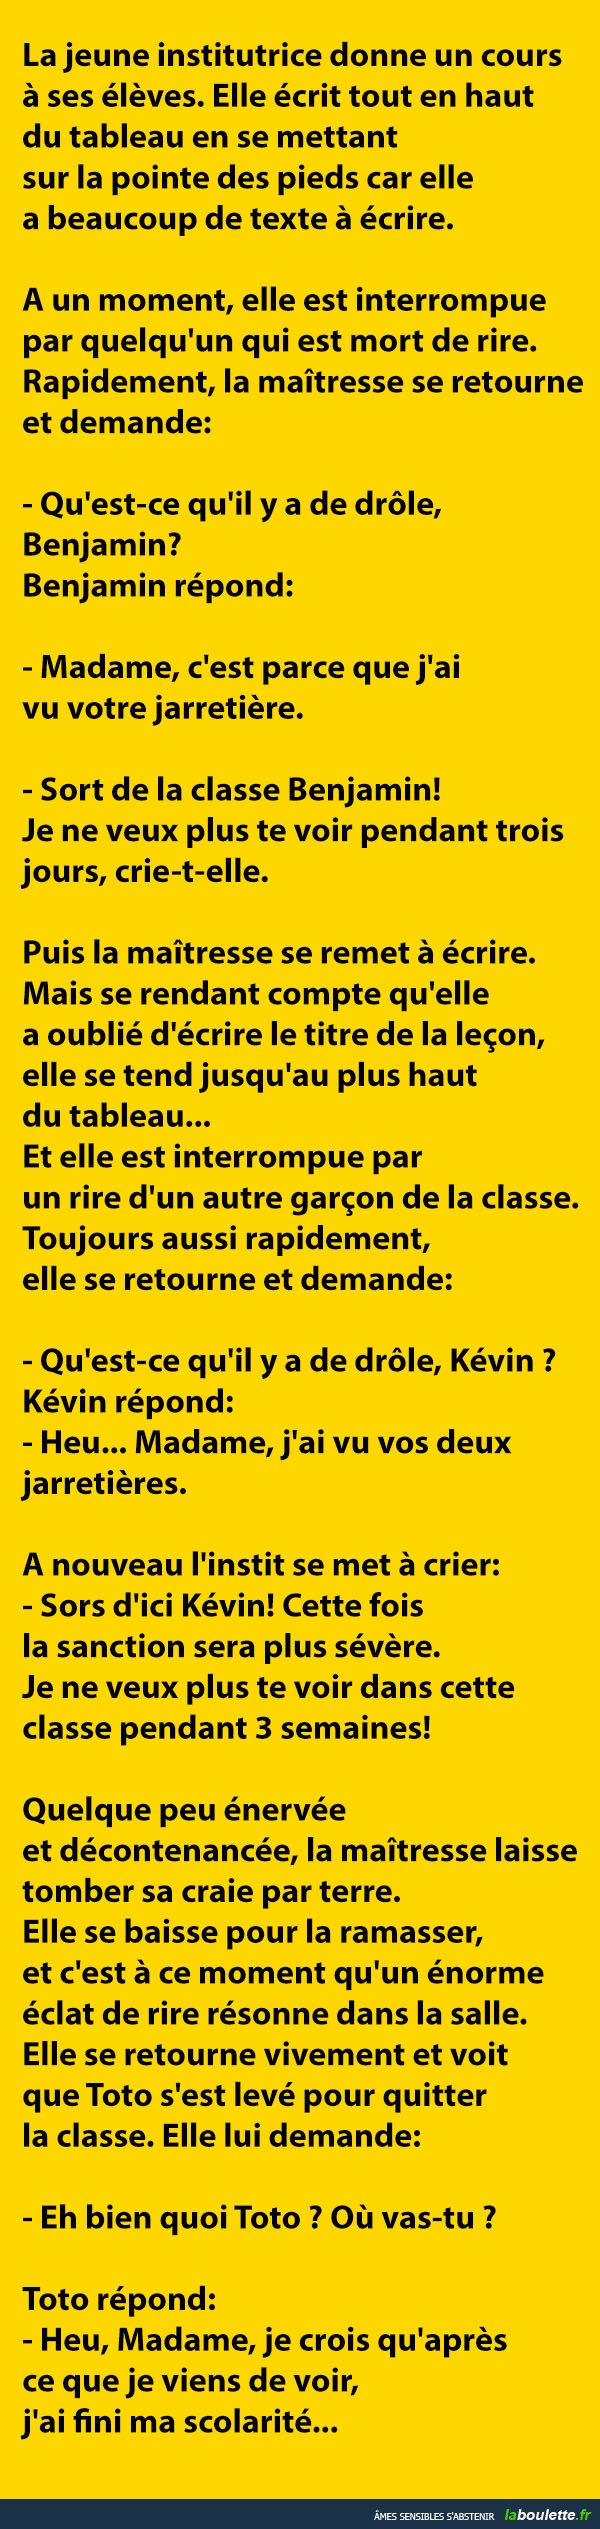 histoire drole kevin